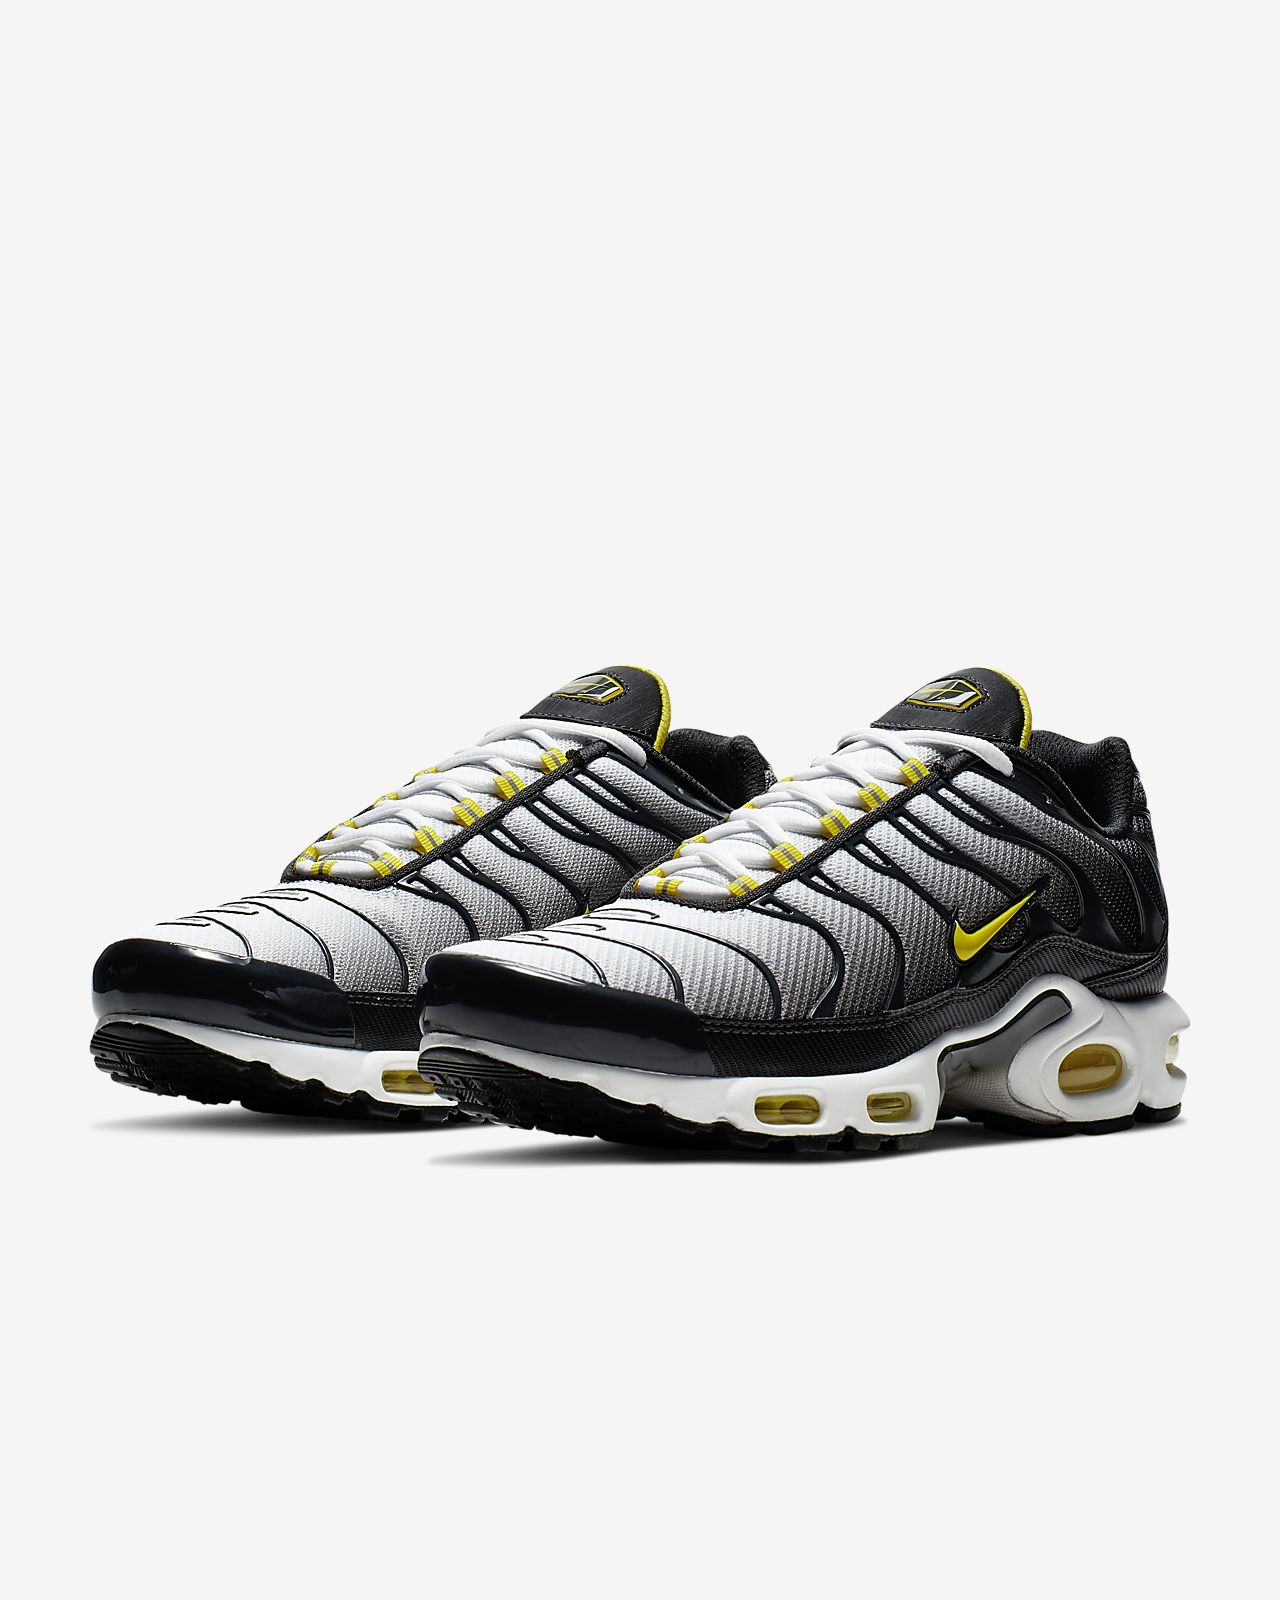 sale retailer b1e4d b73c5 Nike Air Max Plus Men's Shoe